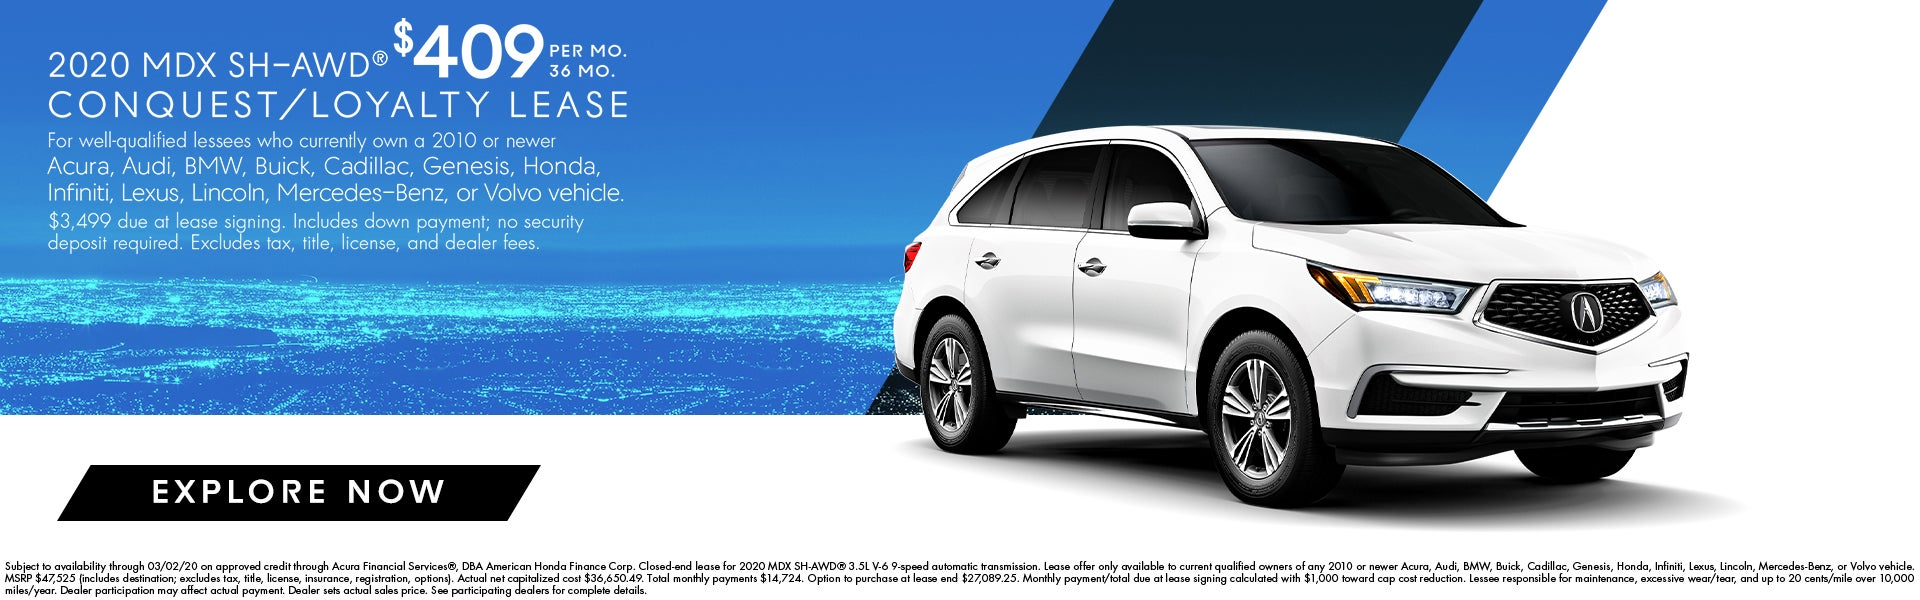 Used Cars Greenville Sc >> Acura Dealer In Greenville Sc Used Cars Greenville